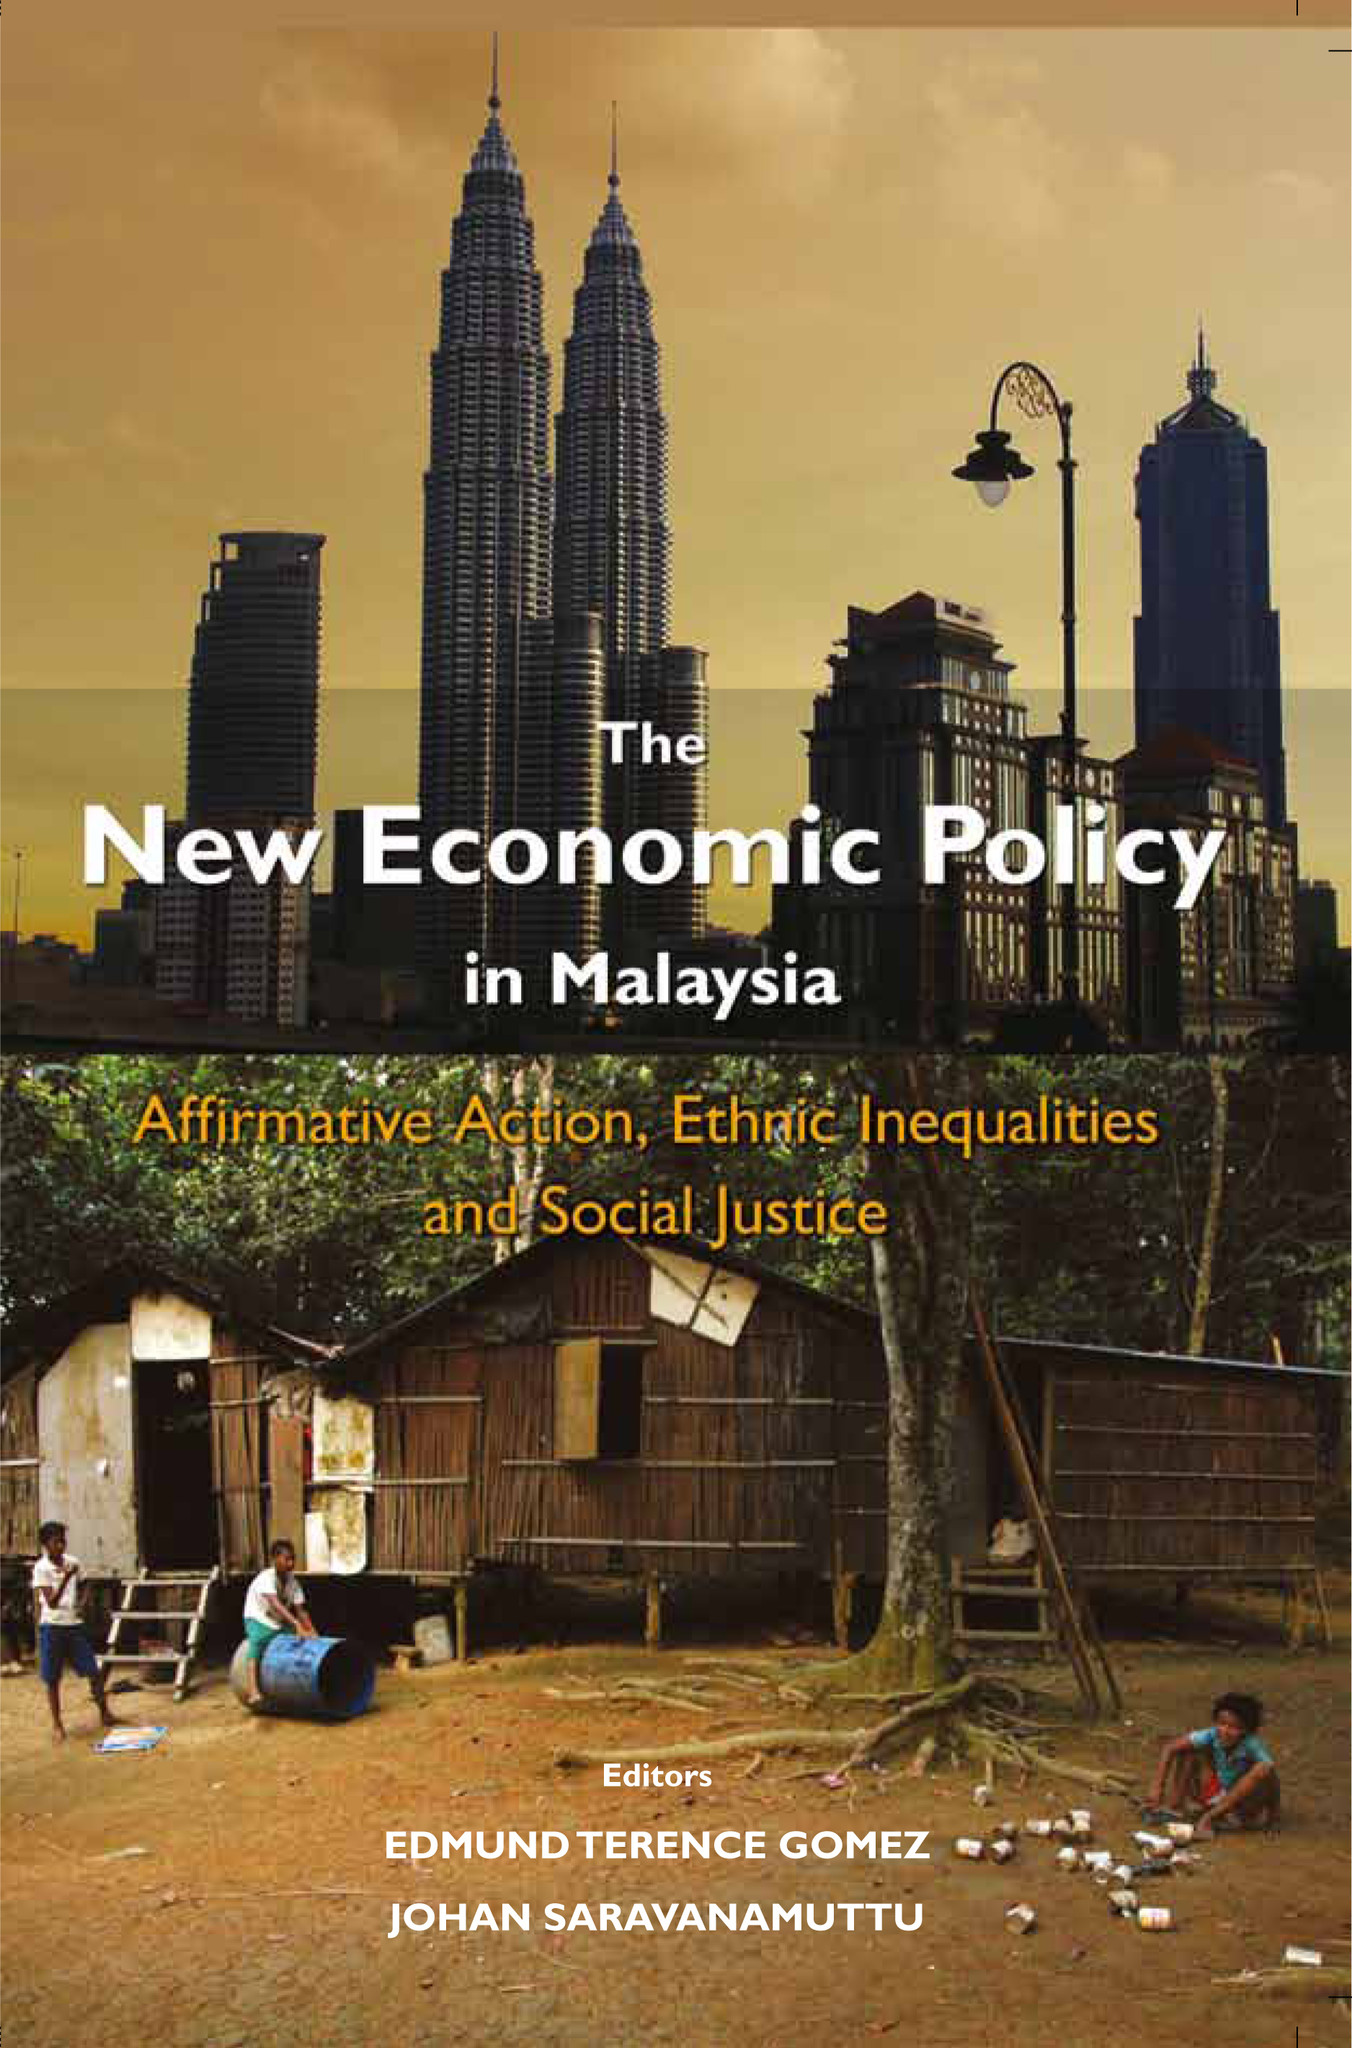 The New Economic Policy in Malaysia: Affirmative Action, Ethnic Inequalities and Social Justice